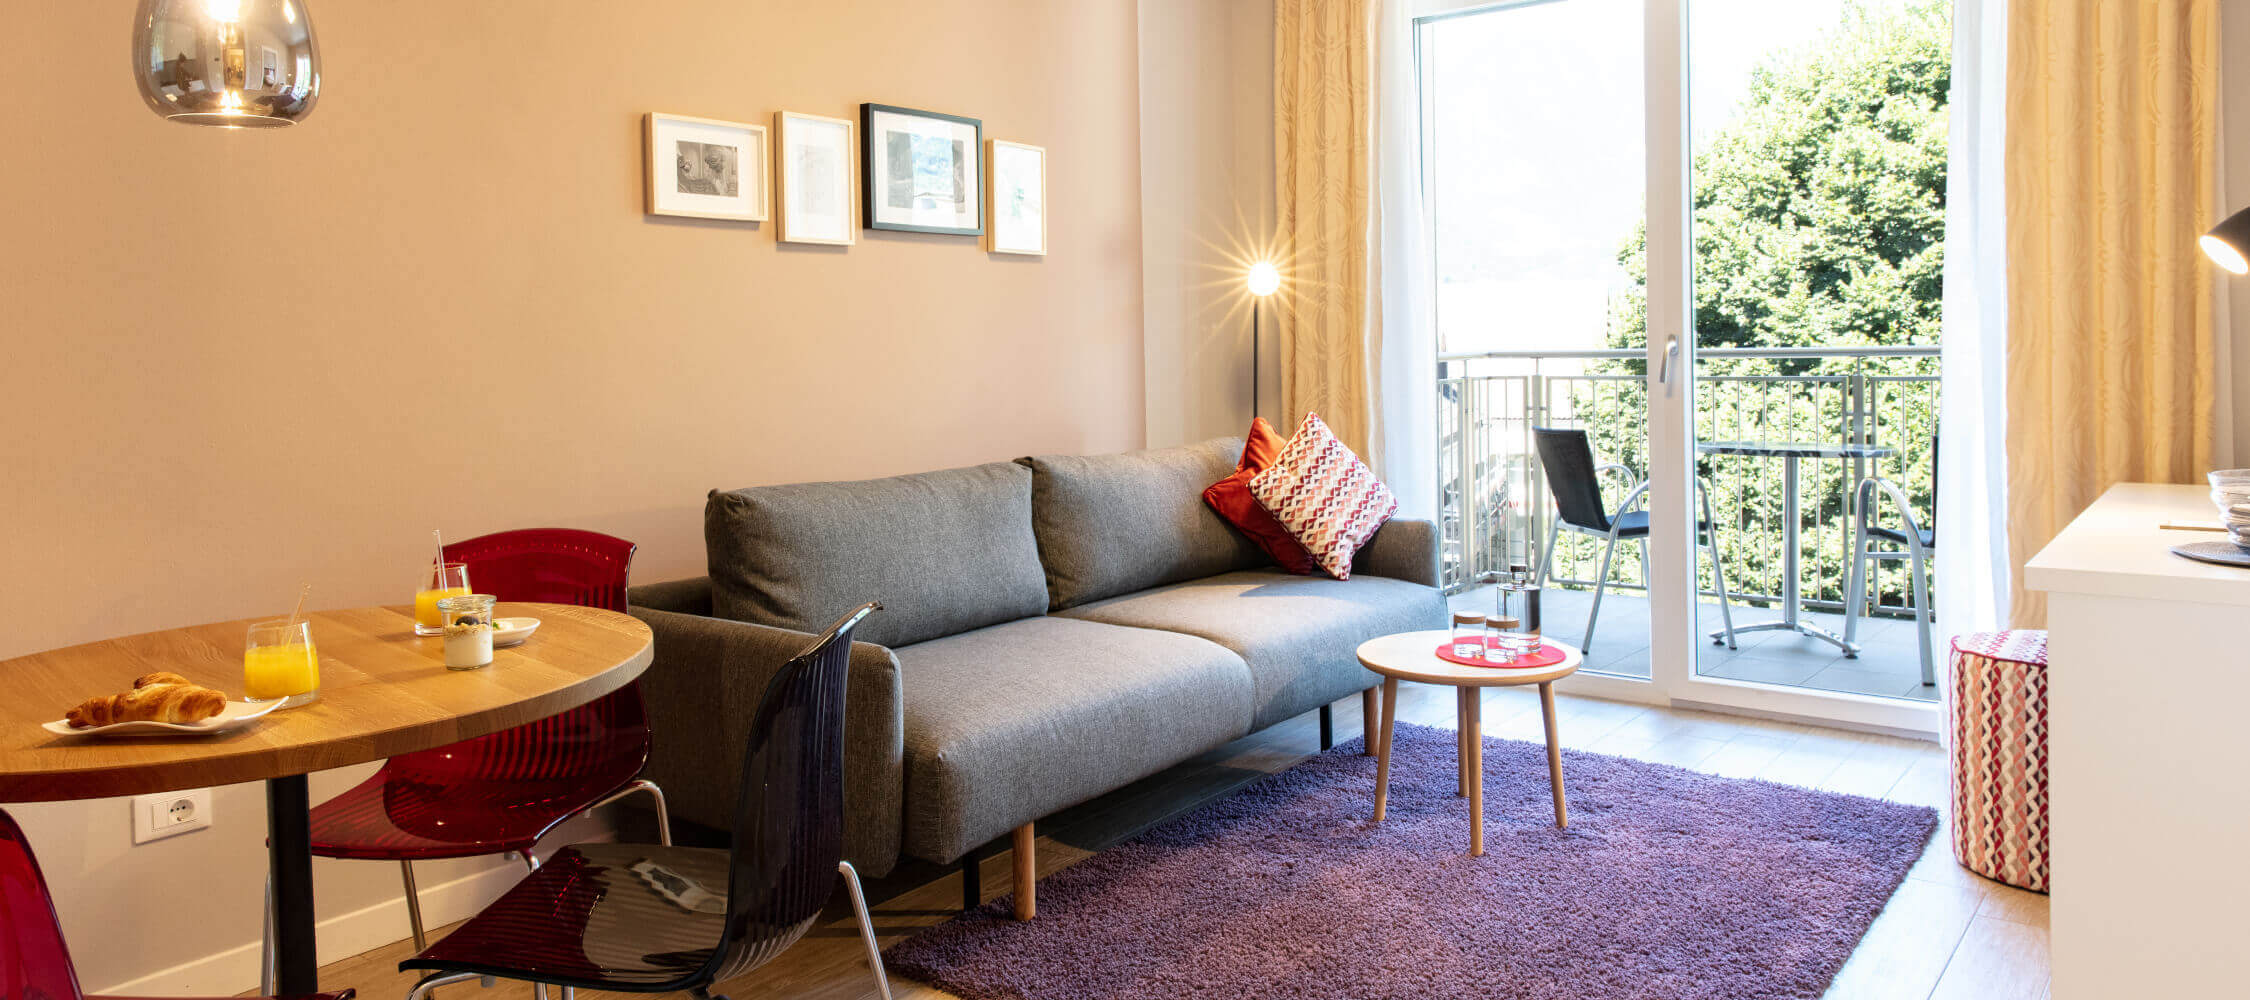 City_Hotel_Merano_Suite_Lifestyle_Wohnzimmer_BeatricePilotto_3T1A1835_2250x1000